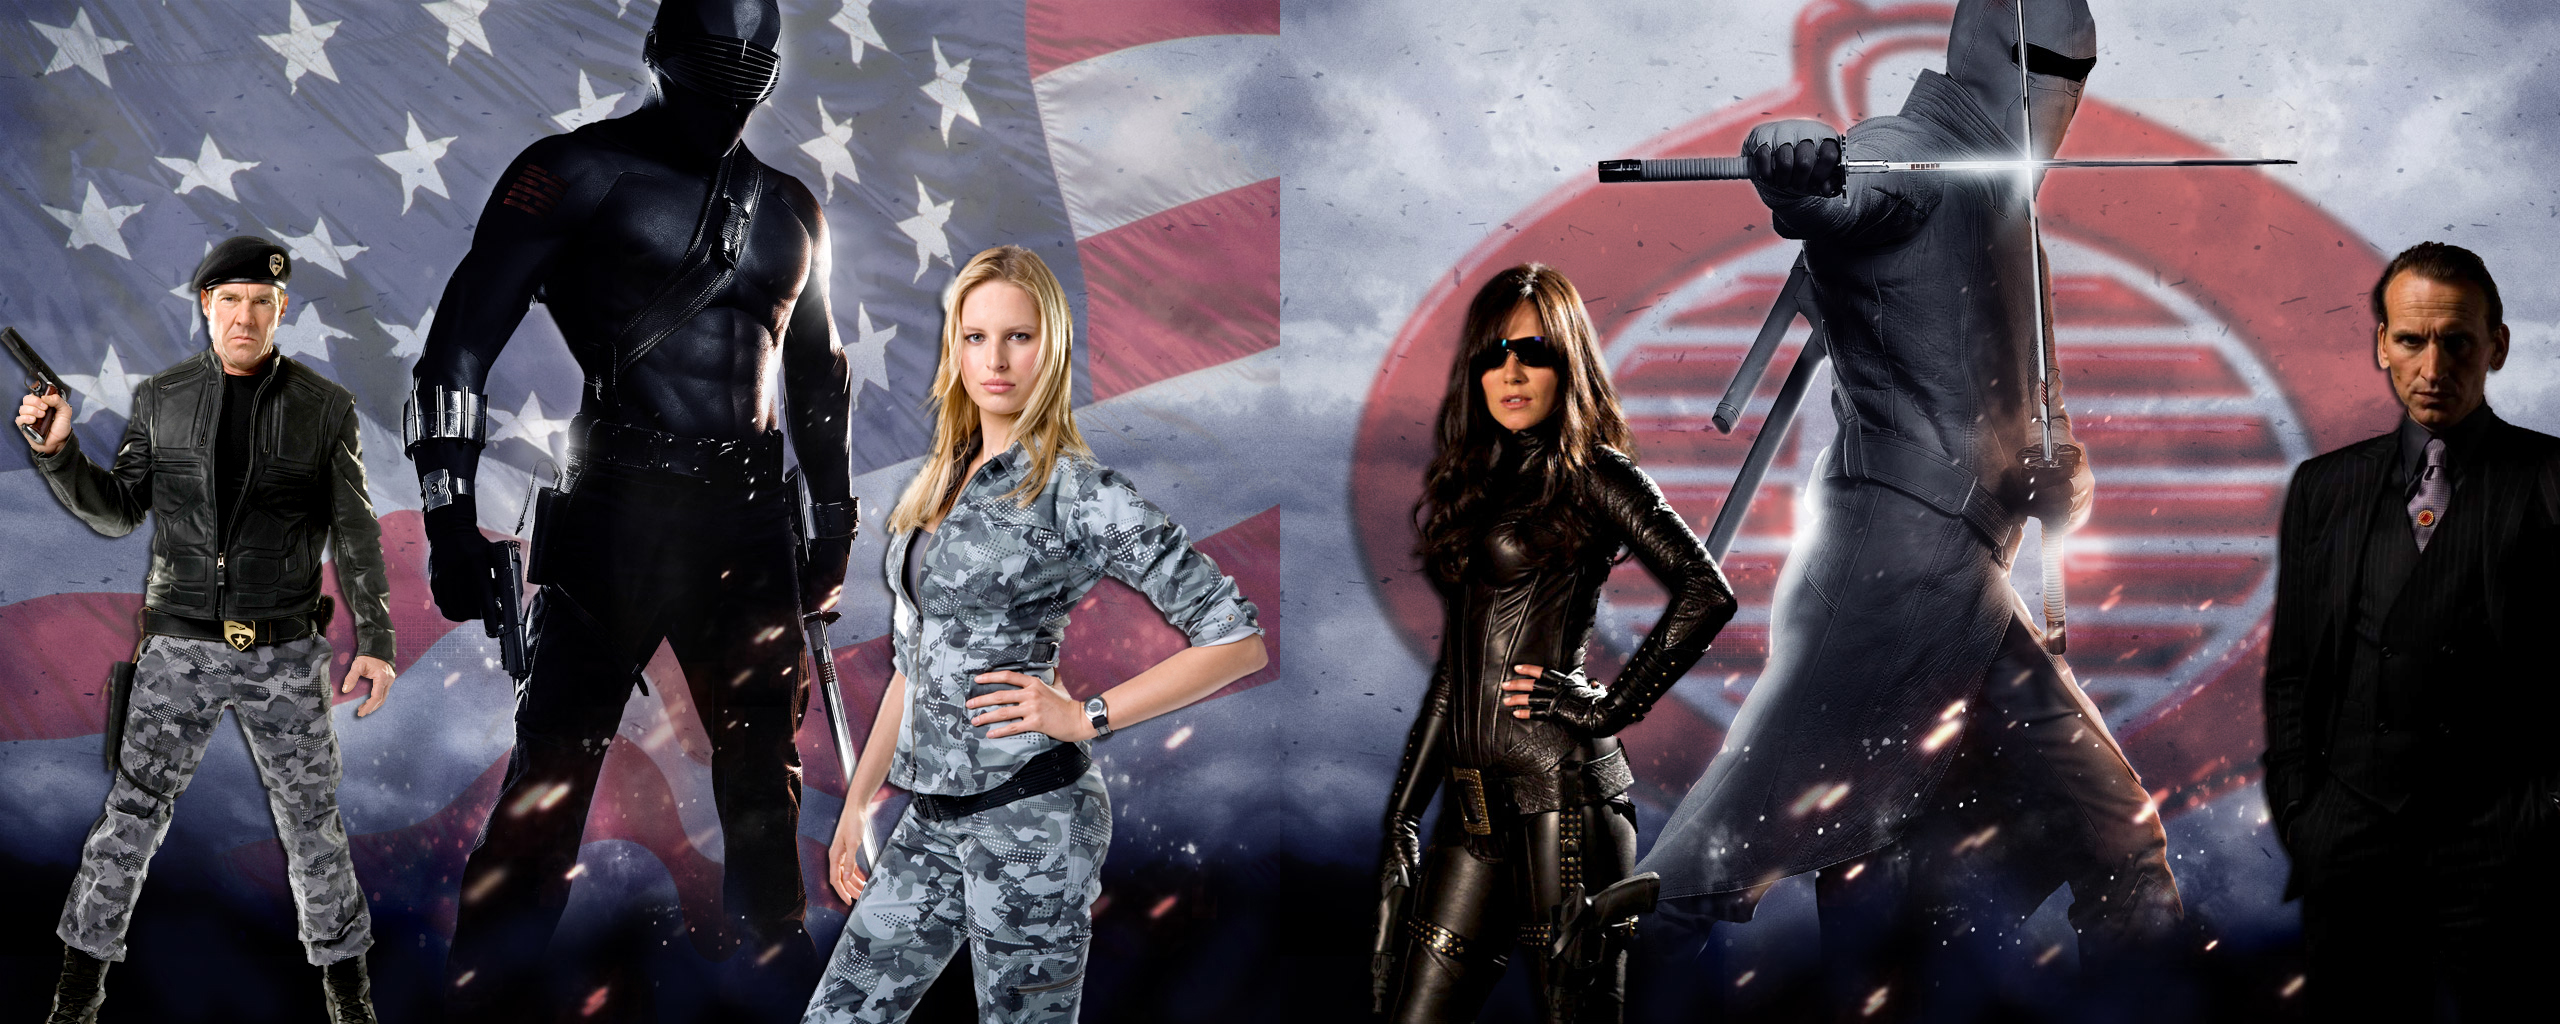 GI Joe and Cobra Desktop and mobile wallpaper Wallippo 2560x1024